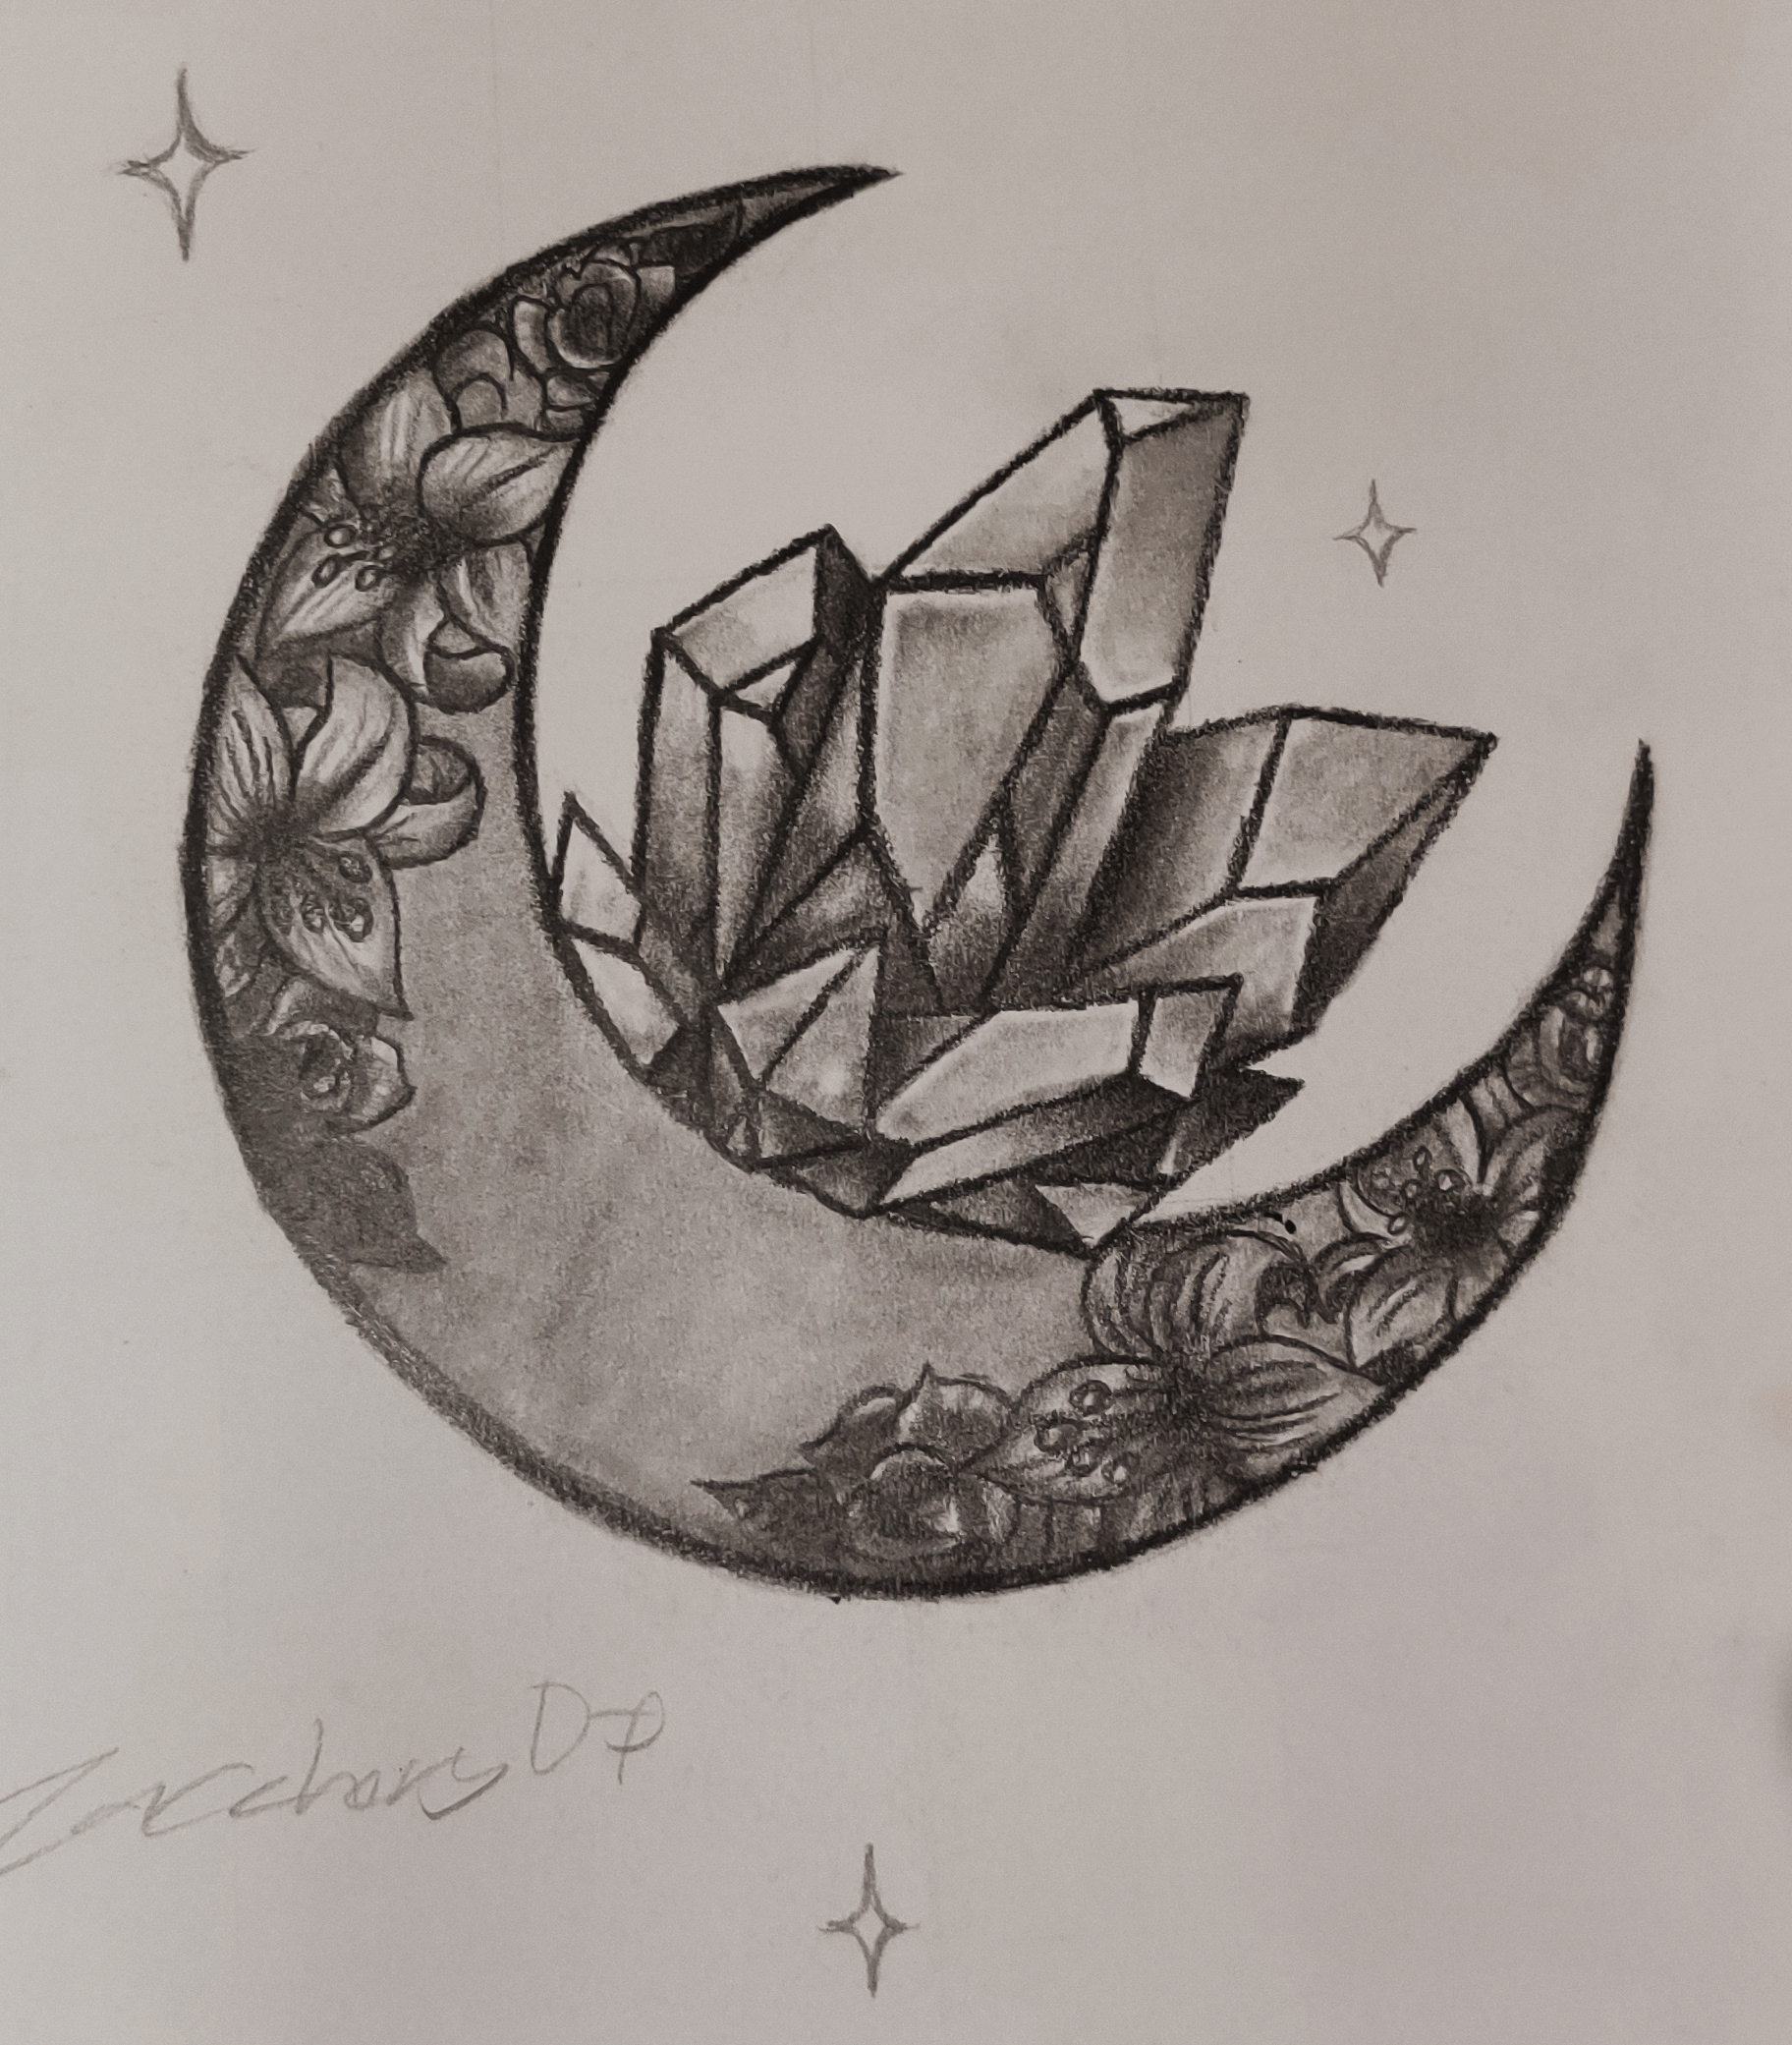 A pencil illustration of a crescent moon with a crystal and flowers.